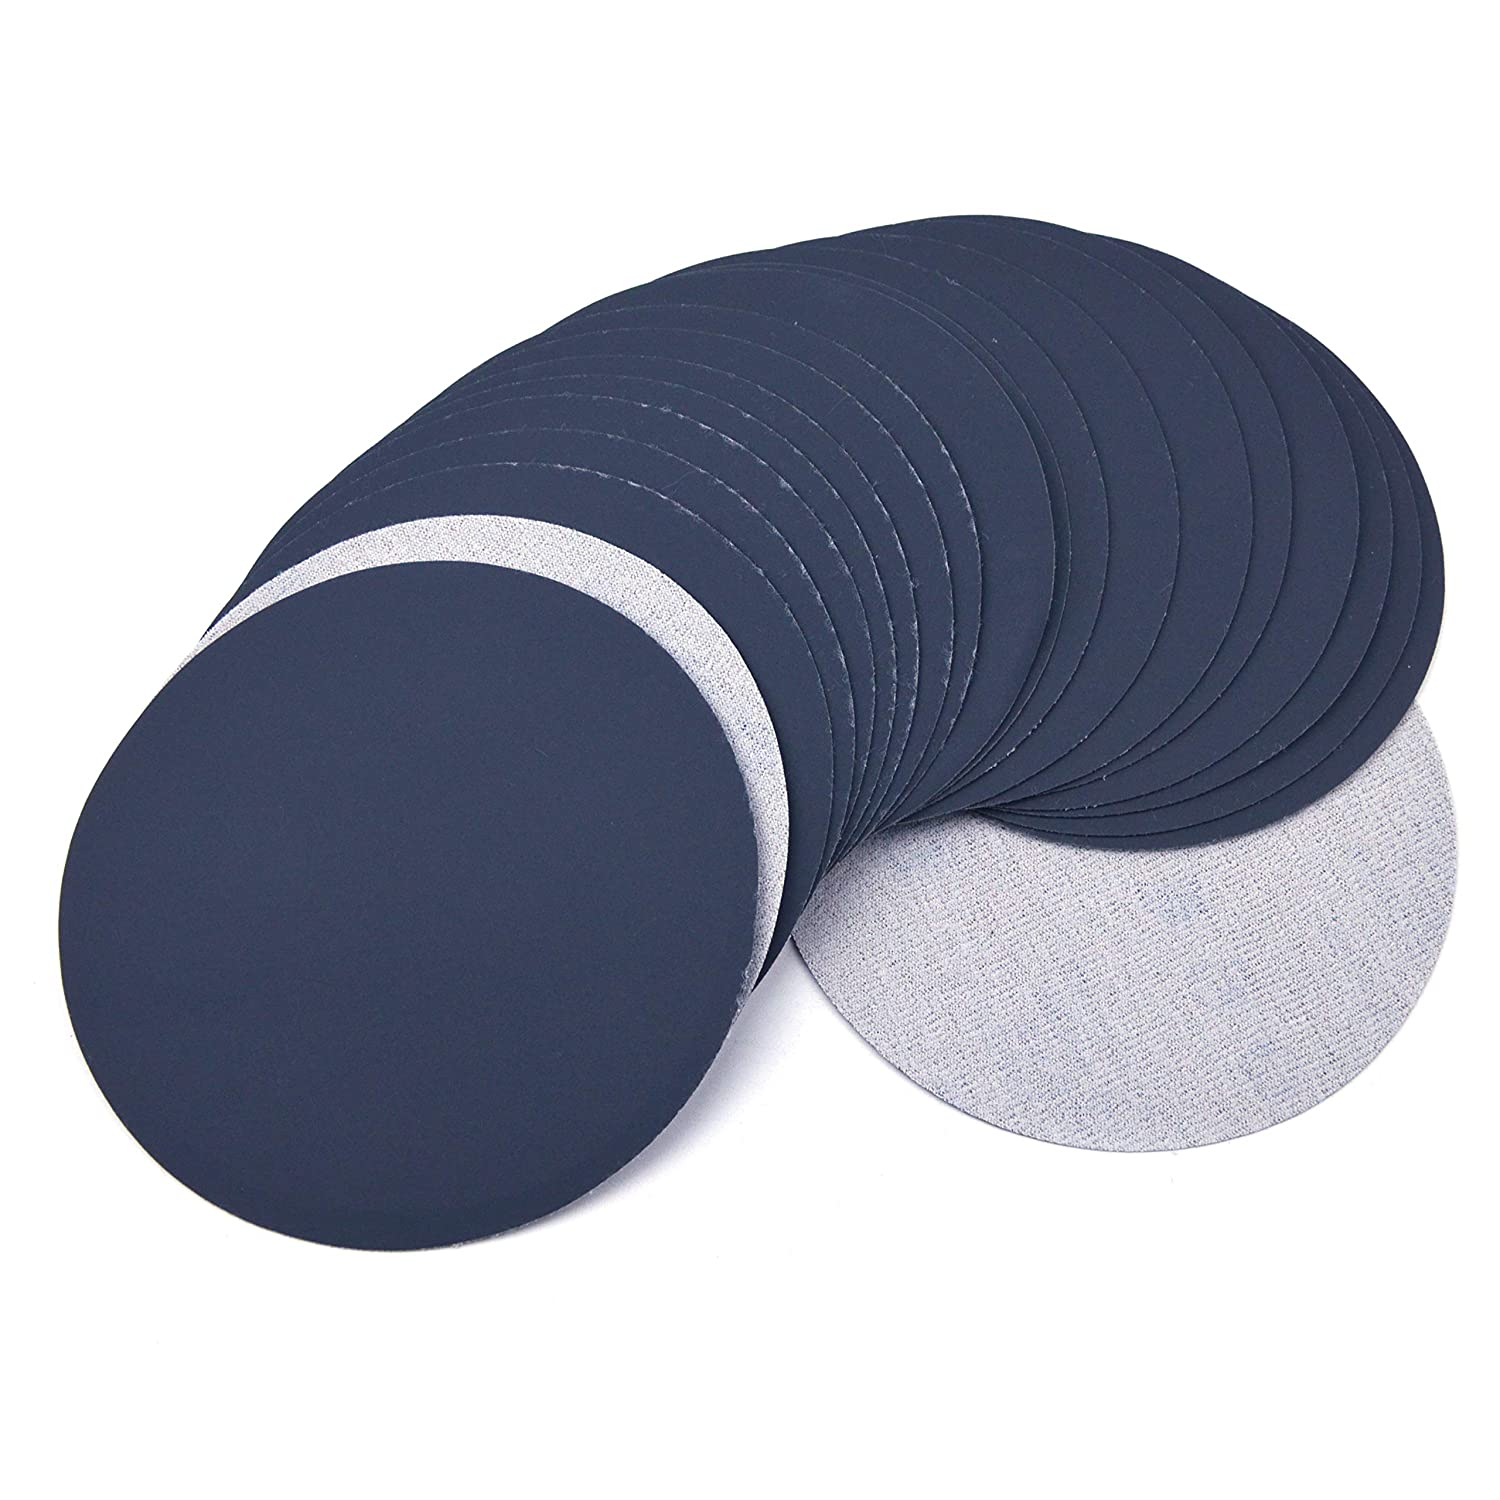 6 Inch (150mm) 1200 Grit High Performance Waterproof Hook & Loop Sanding Discs Heavy Duty Silicon Carbide Round Flocking Sandpaper for Wet/Dry Sanding Grinder Polishing Accessories, 20-Pack 81yTAKf2BRTL